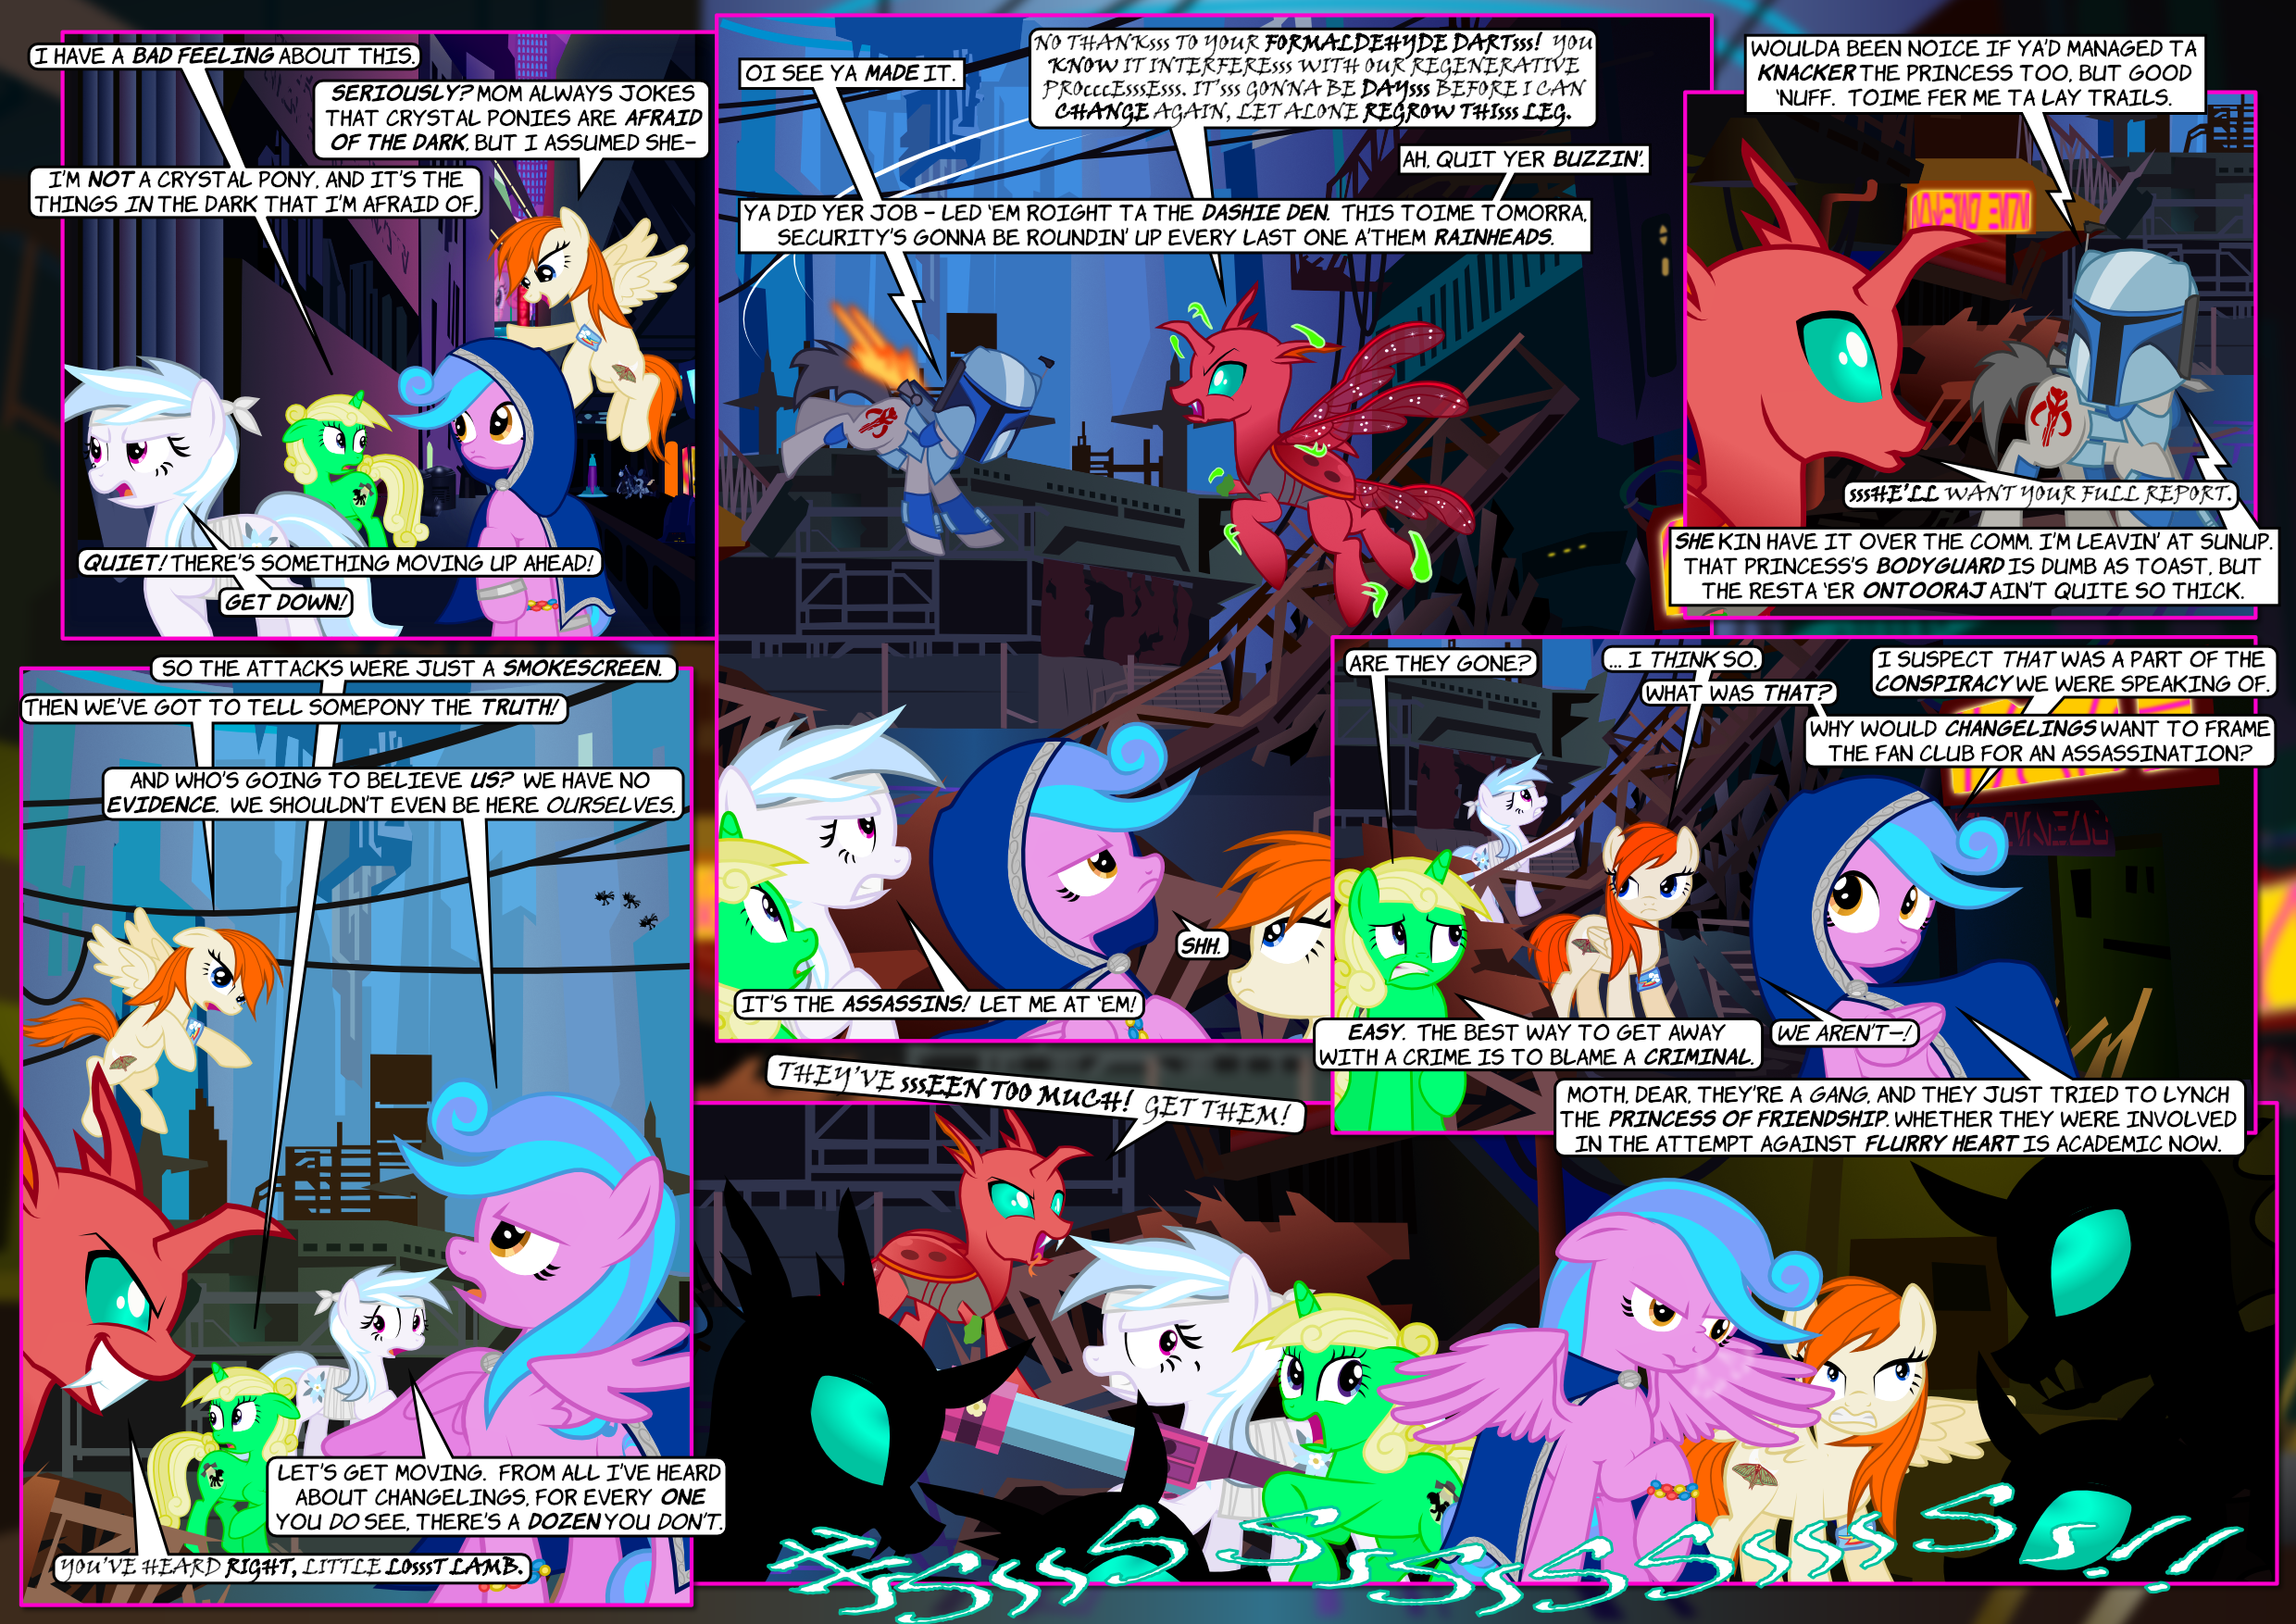 The Pone Wars 1.7: Spare Change